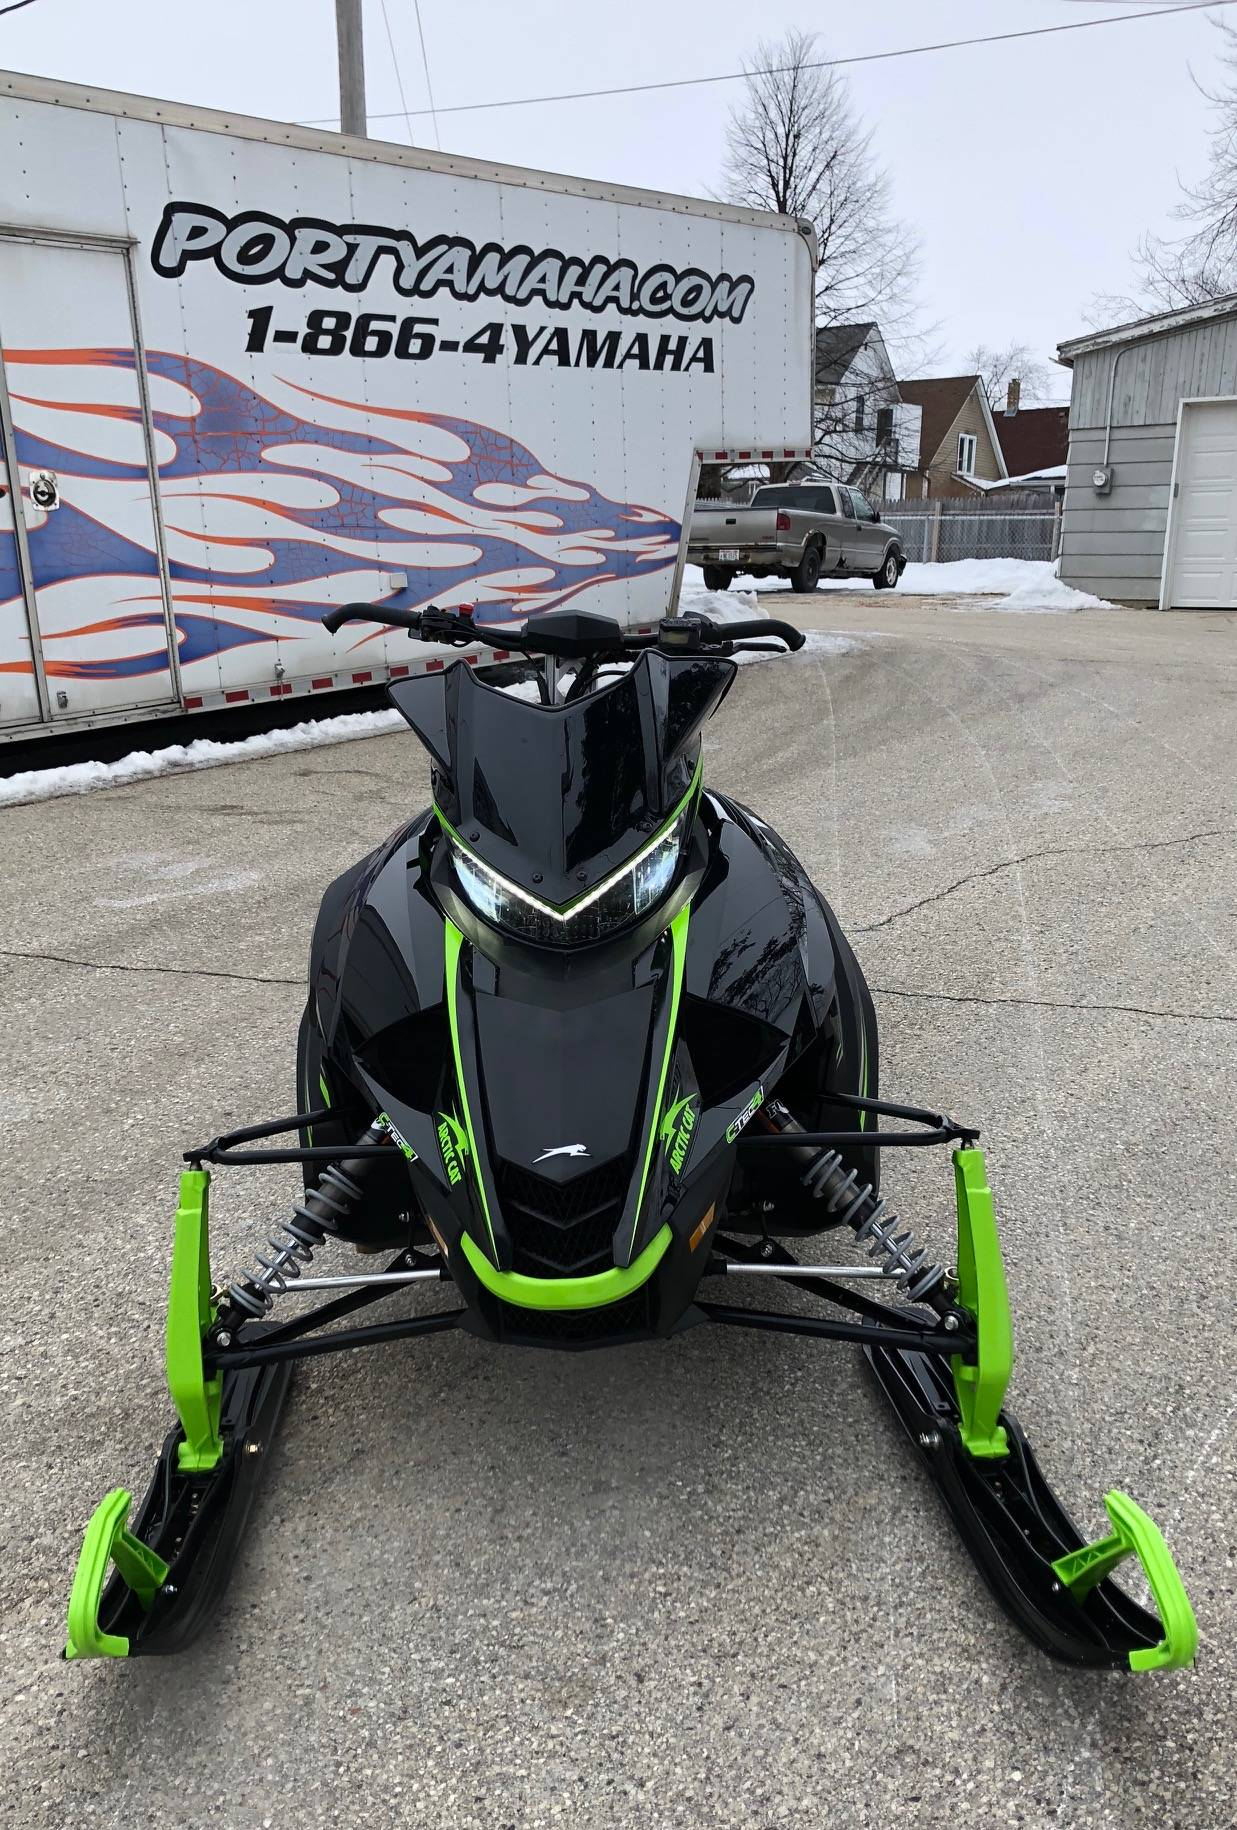 2019 Arctic Cat ZR 9000 Sno Pro 137 in Port Washington, Wisconsin - Photo 3